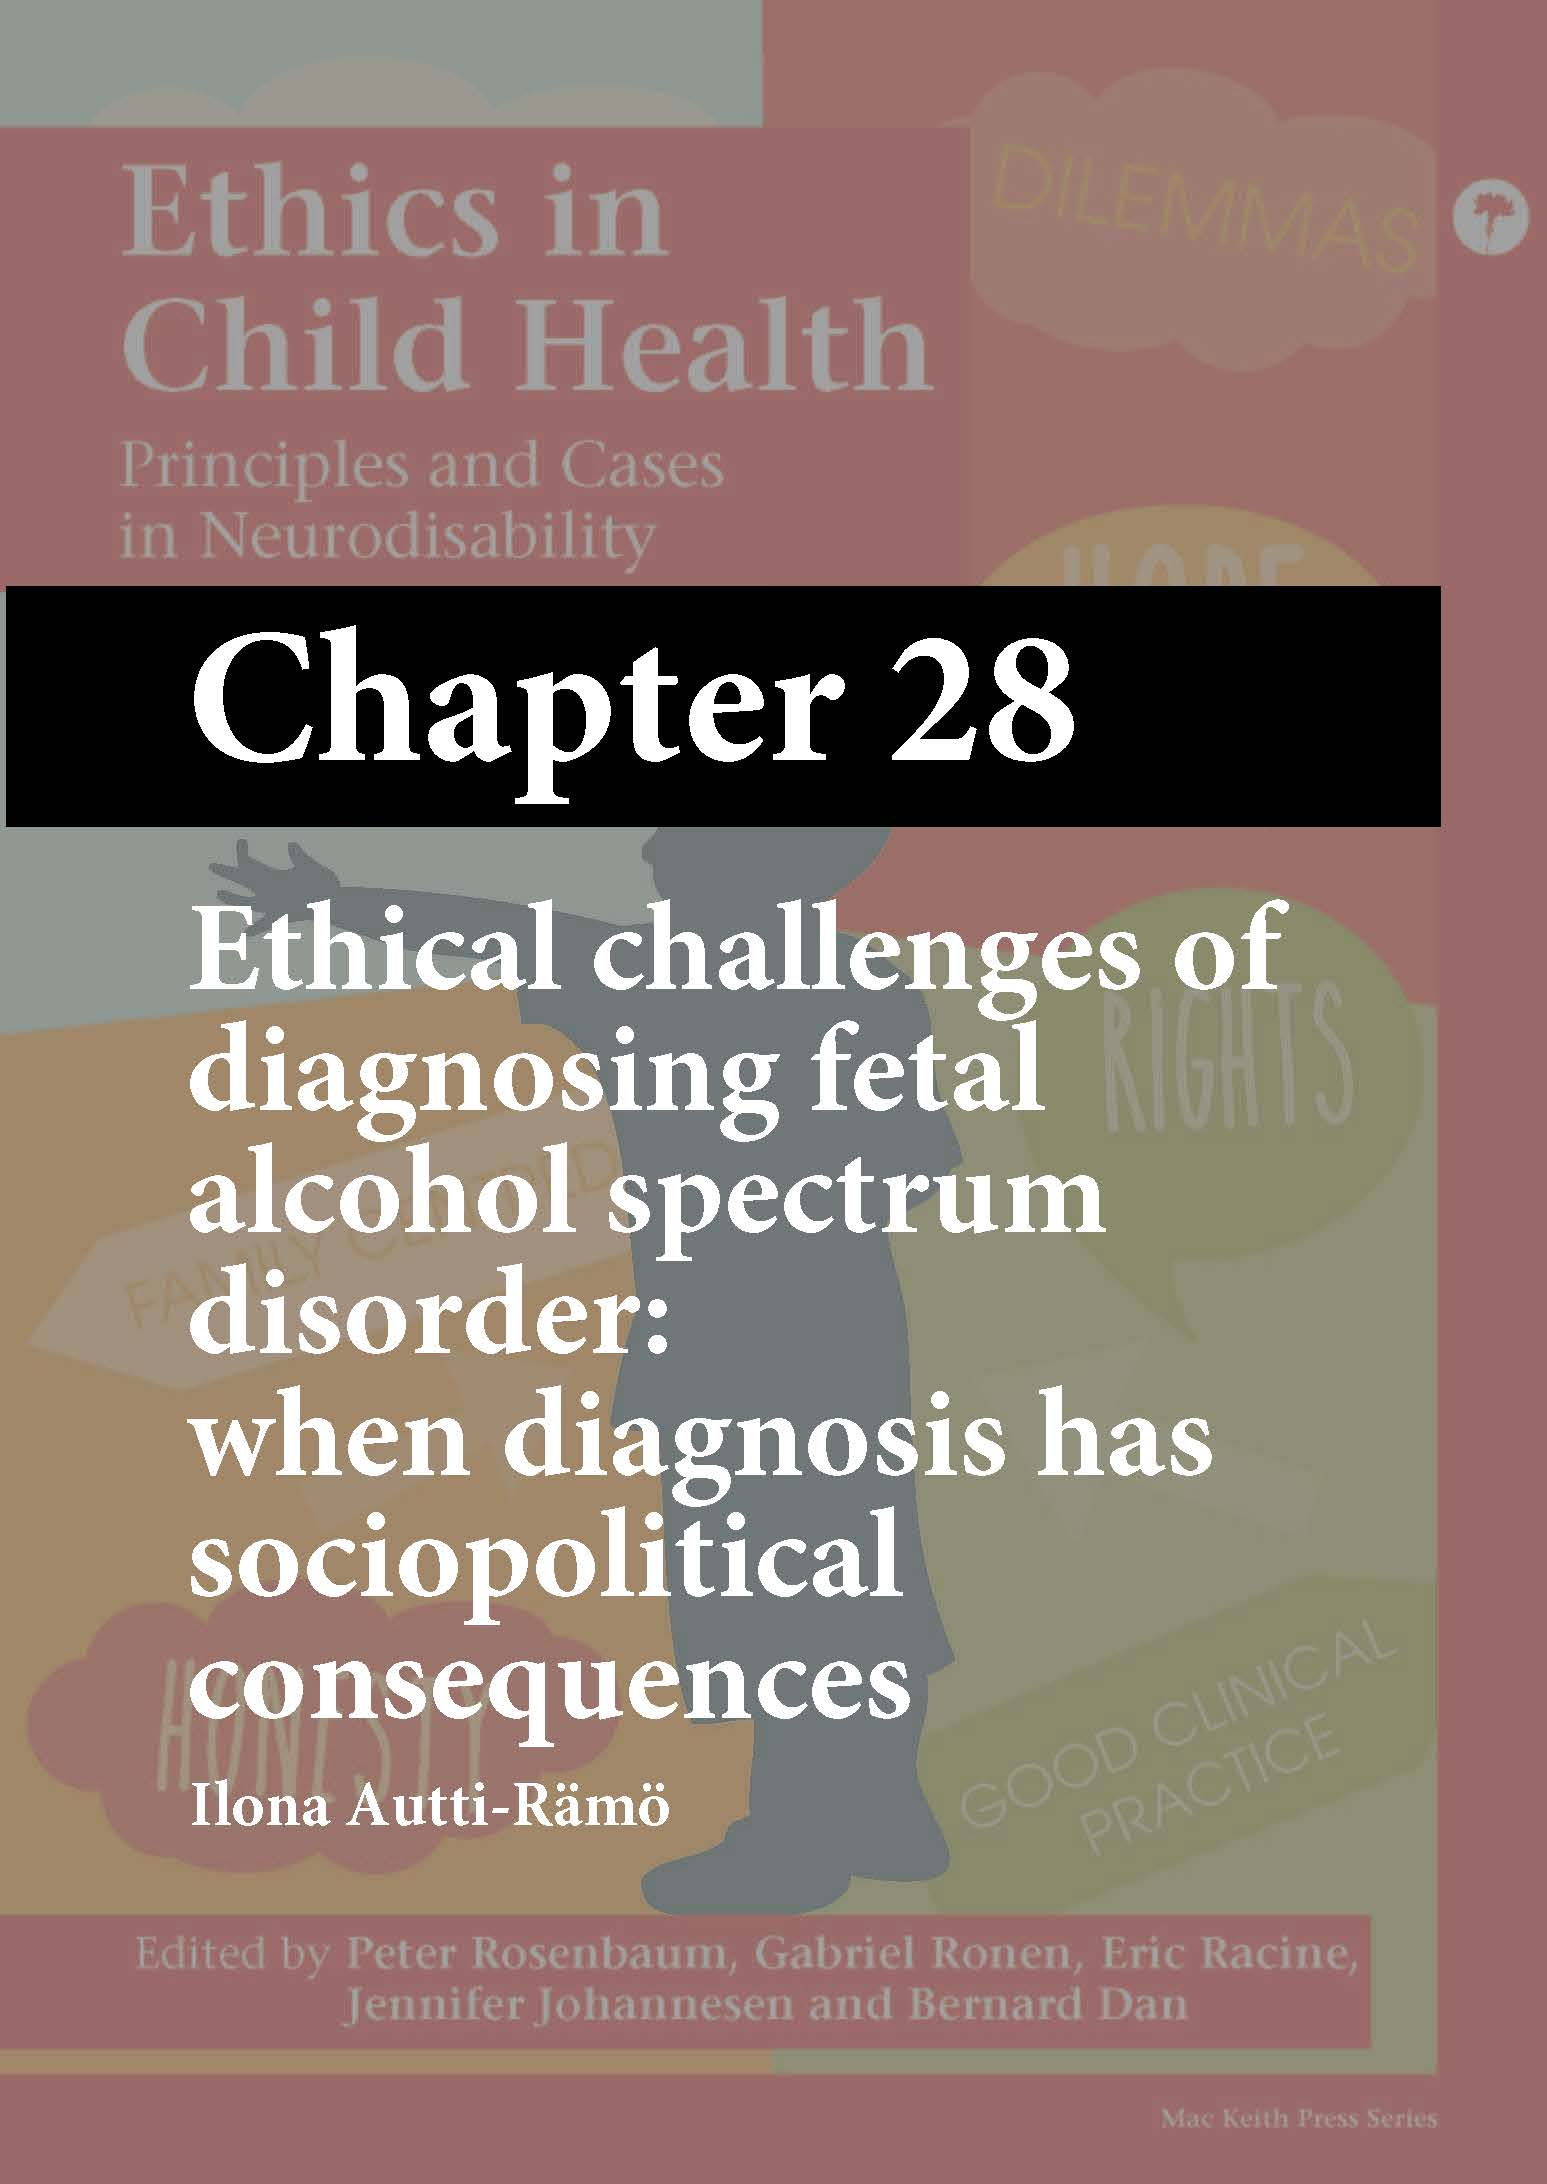 Ethics in Child Health, Rosenbaum, Chapter 28 cover